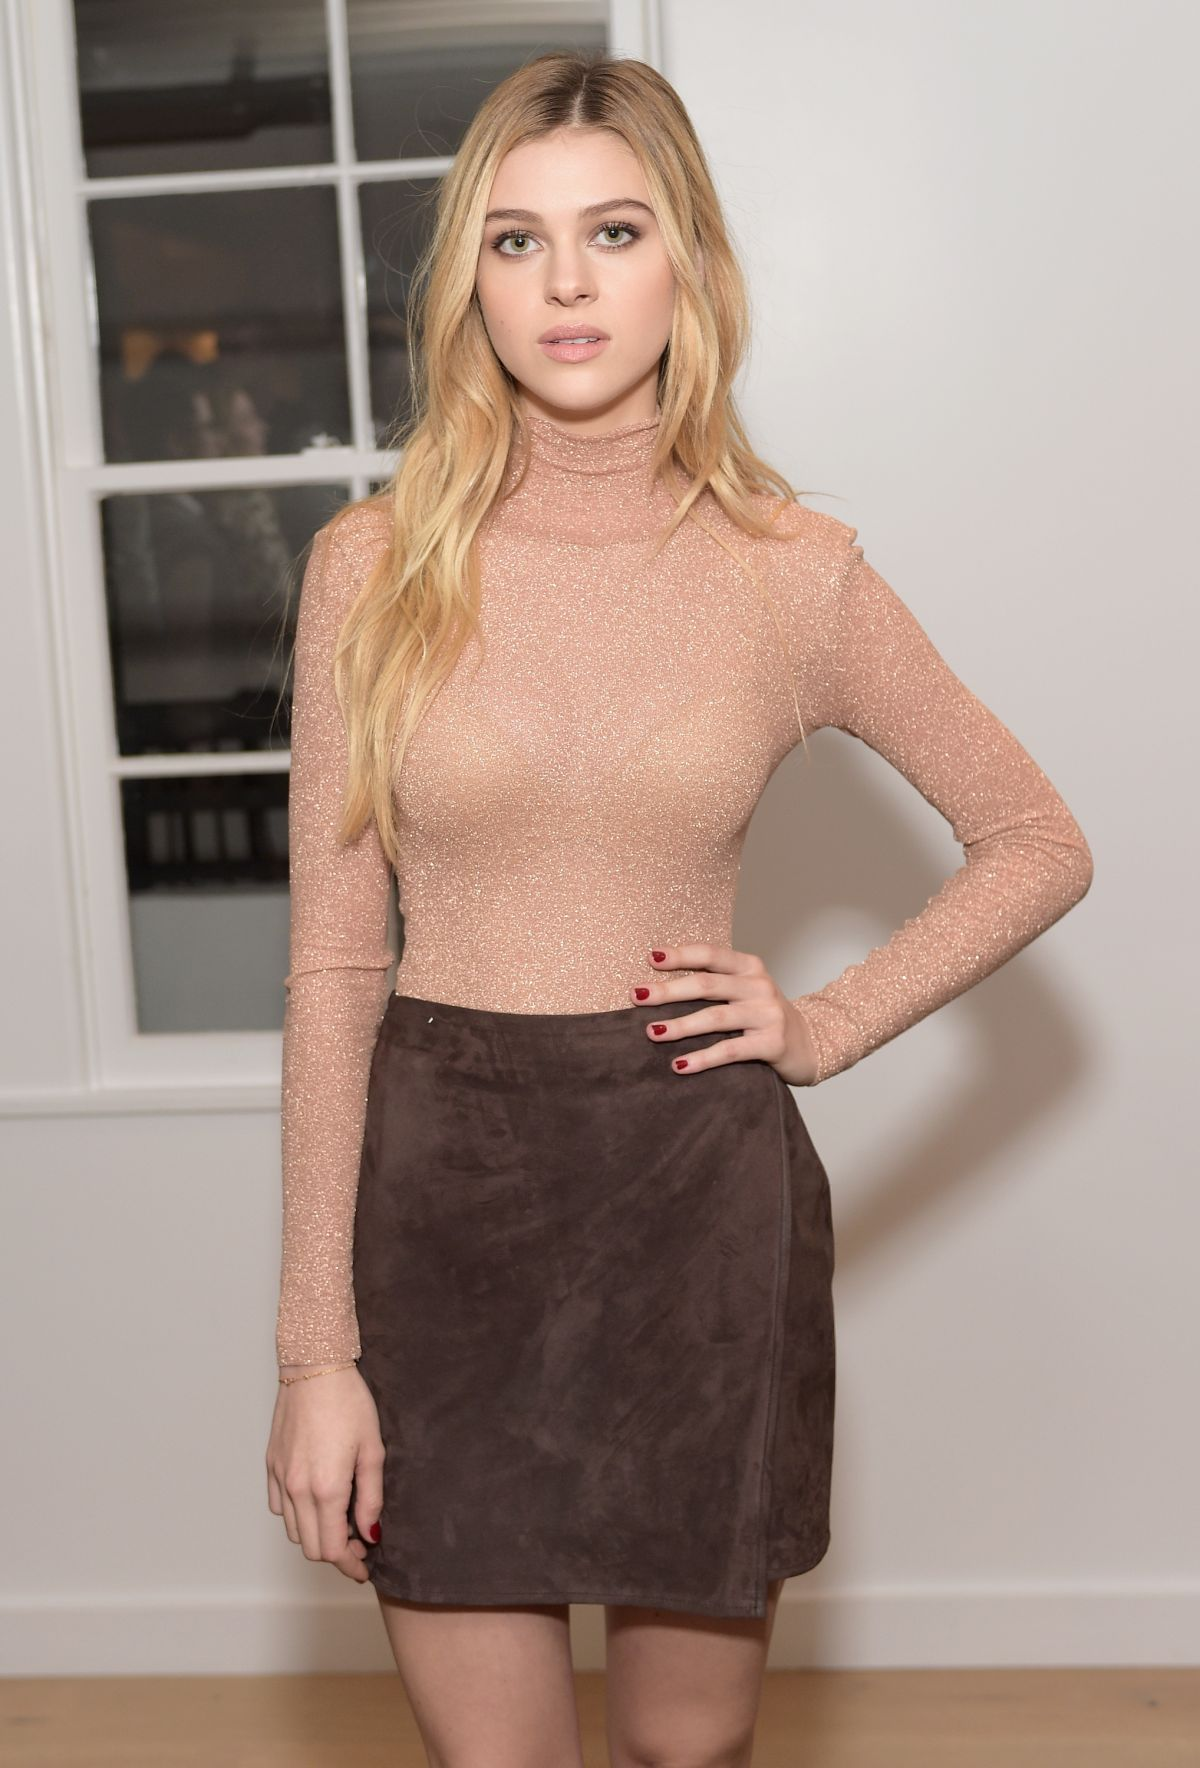 Nicola Peltz At The Apartment By Line La Opening New York Youtube Fashion